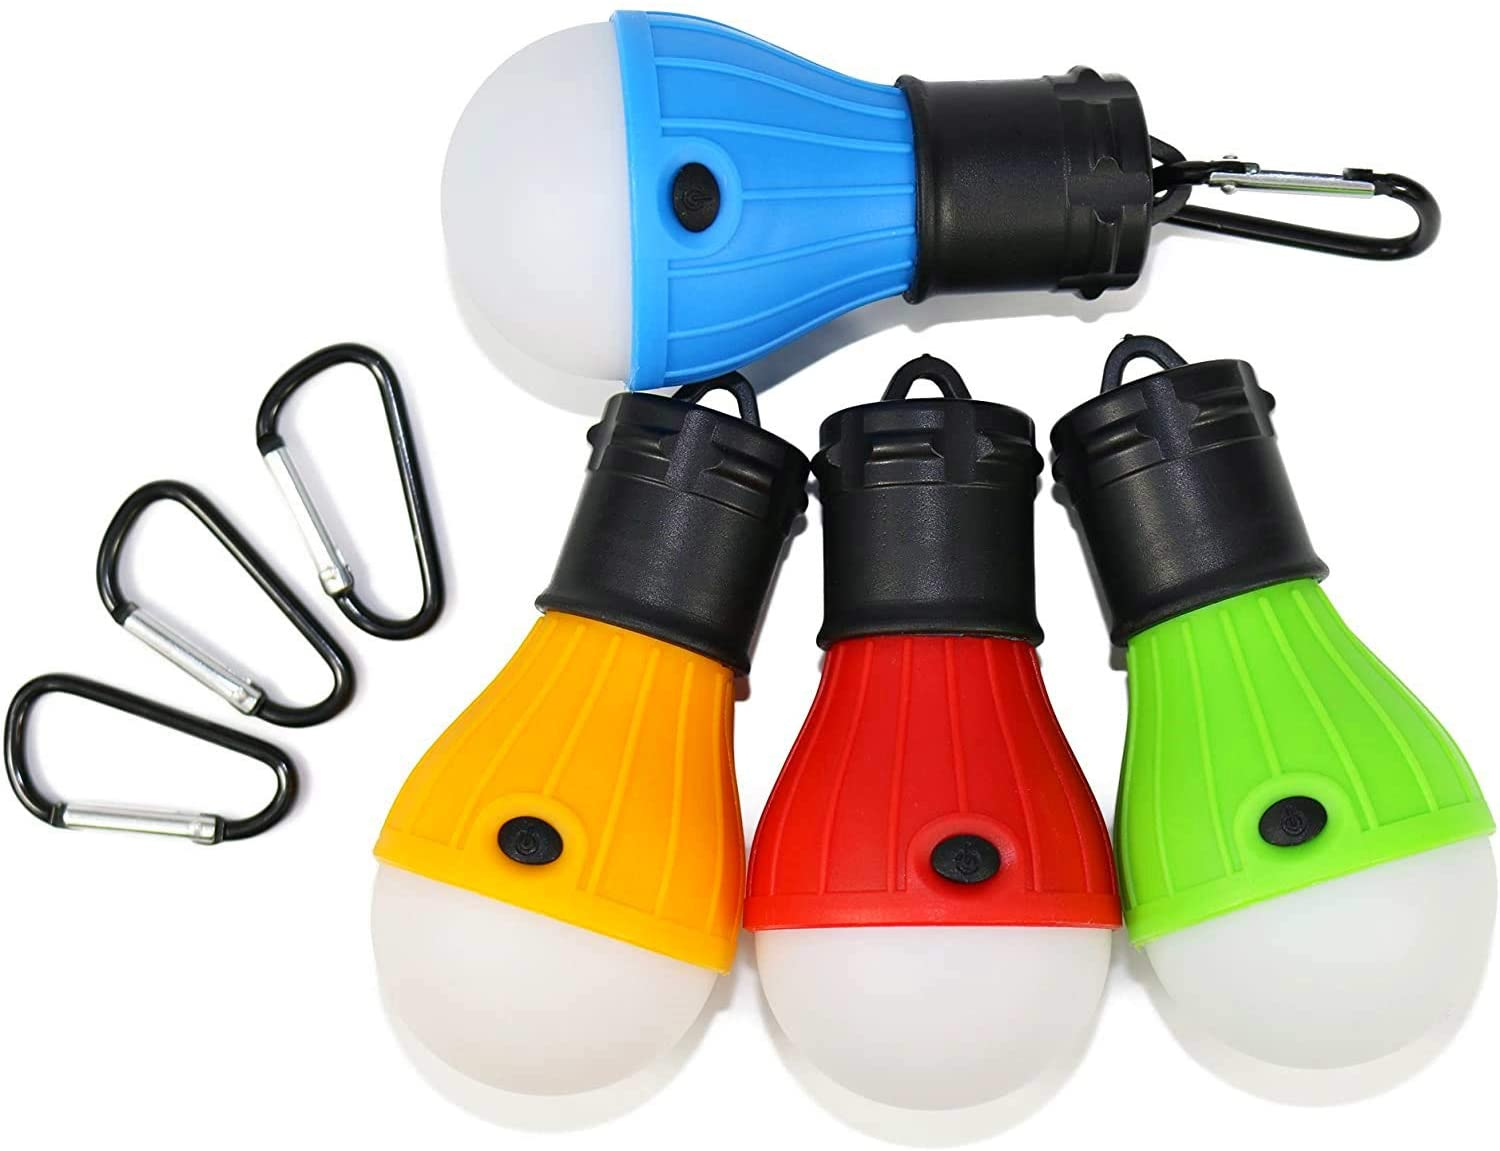 Green Olives 4-pack Outdoor Camping Lamp LED Portable Outdoor Tent Light Bulb with Clip Hook Emergency Light Battery Operated Powered Waterproof Portable Bulb for Camping Fishing Picnic Hiking